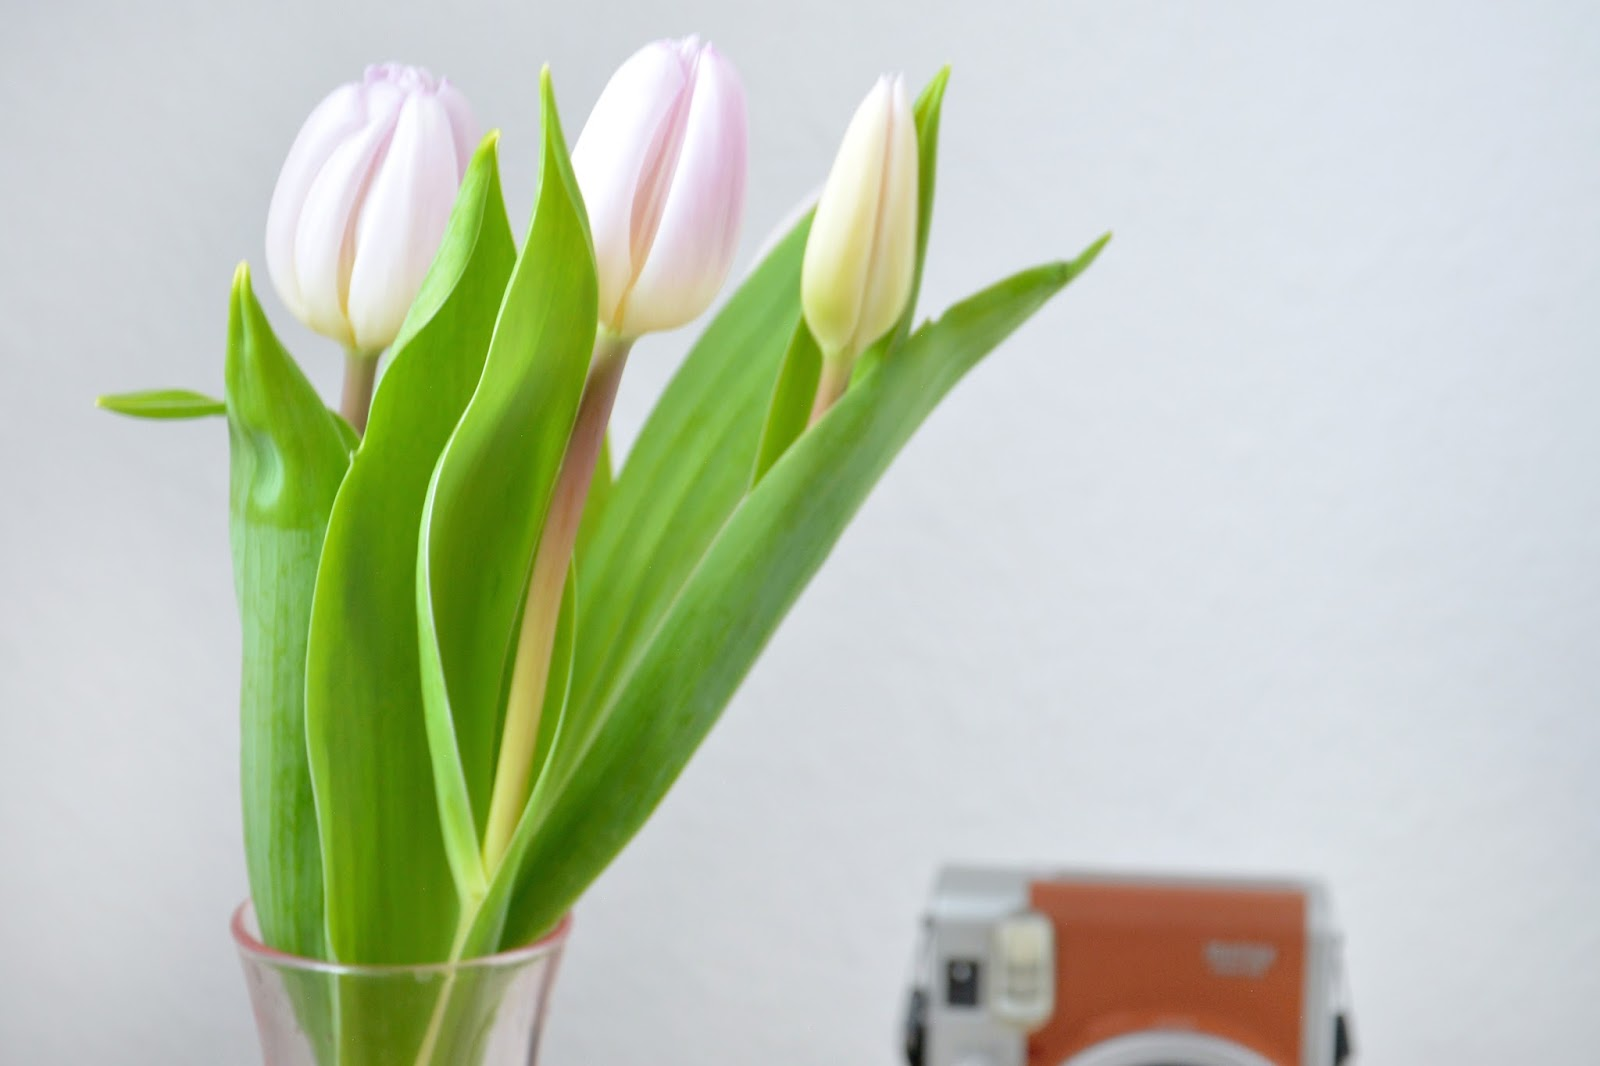 Instax Mini 90s Retro Brown; Fresh Tulips; Primark Pink Vase